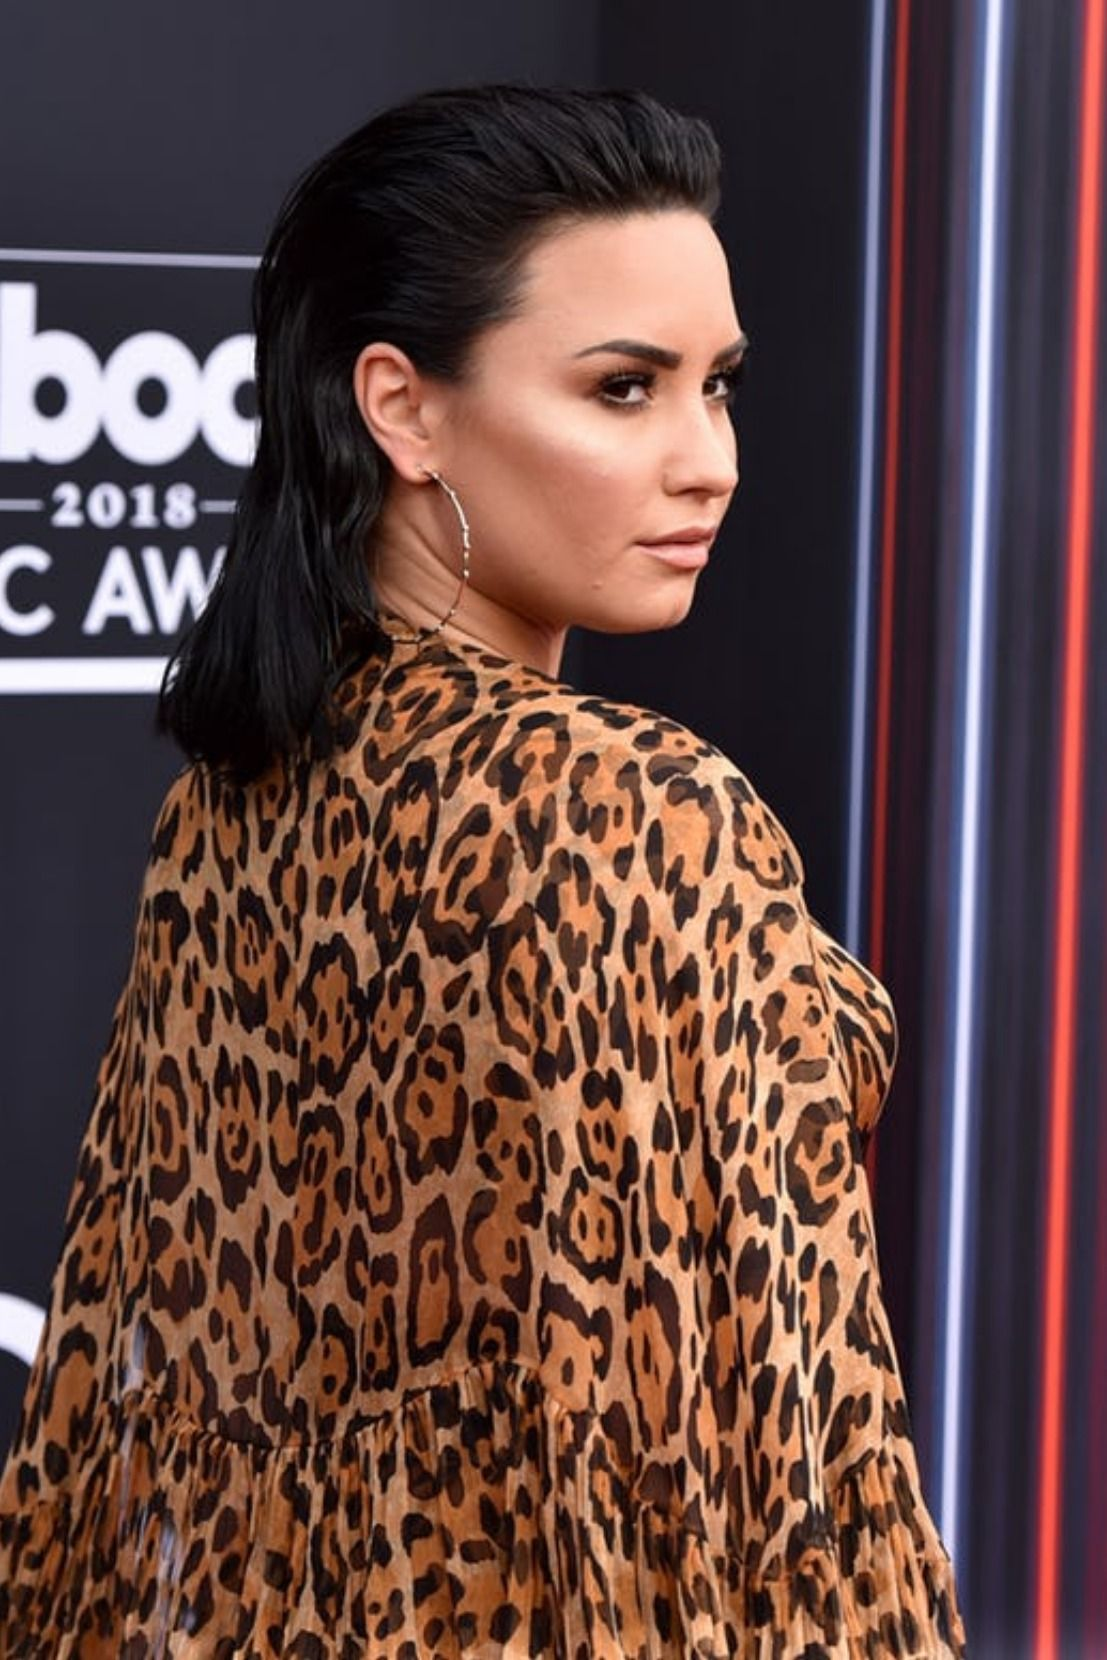 Demi arrived at the Billboard Music Awards 2018 dressed in